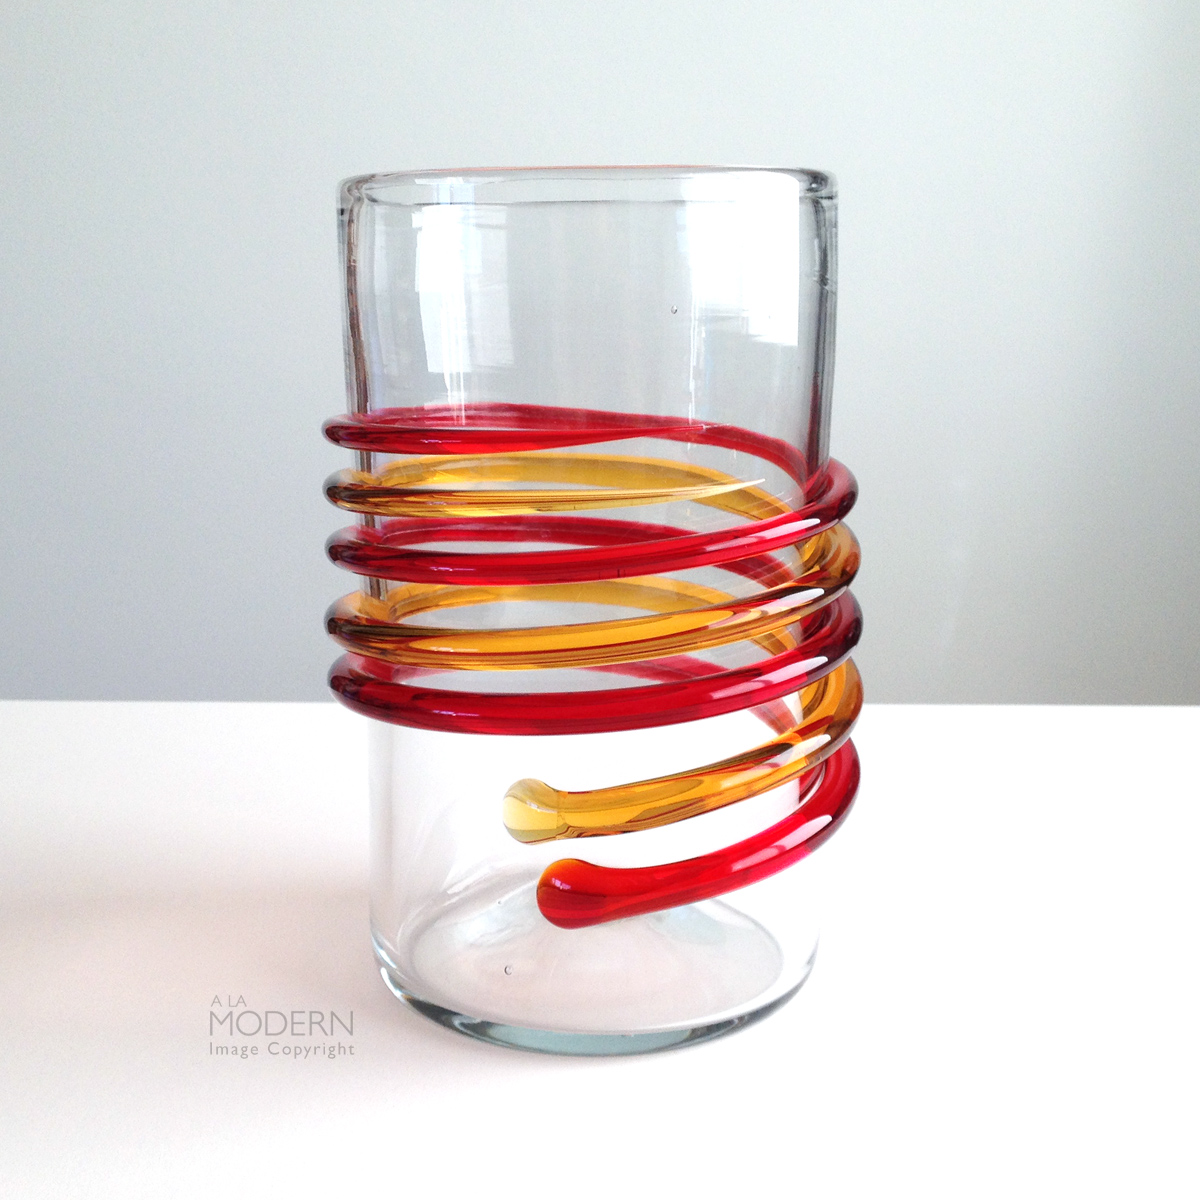 Blenko glass myers 6710a tangerine honey double spiral vase on a fantastic blenko glass tall clear cylindrical column vase with red and orange applied spiral helix design around side this is the number 6710a myers vase reviewsmspy